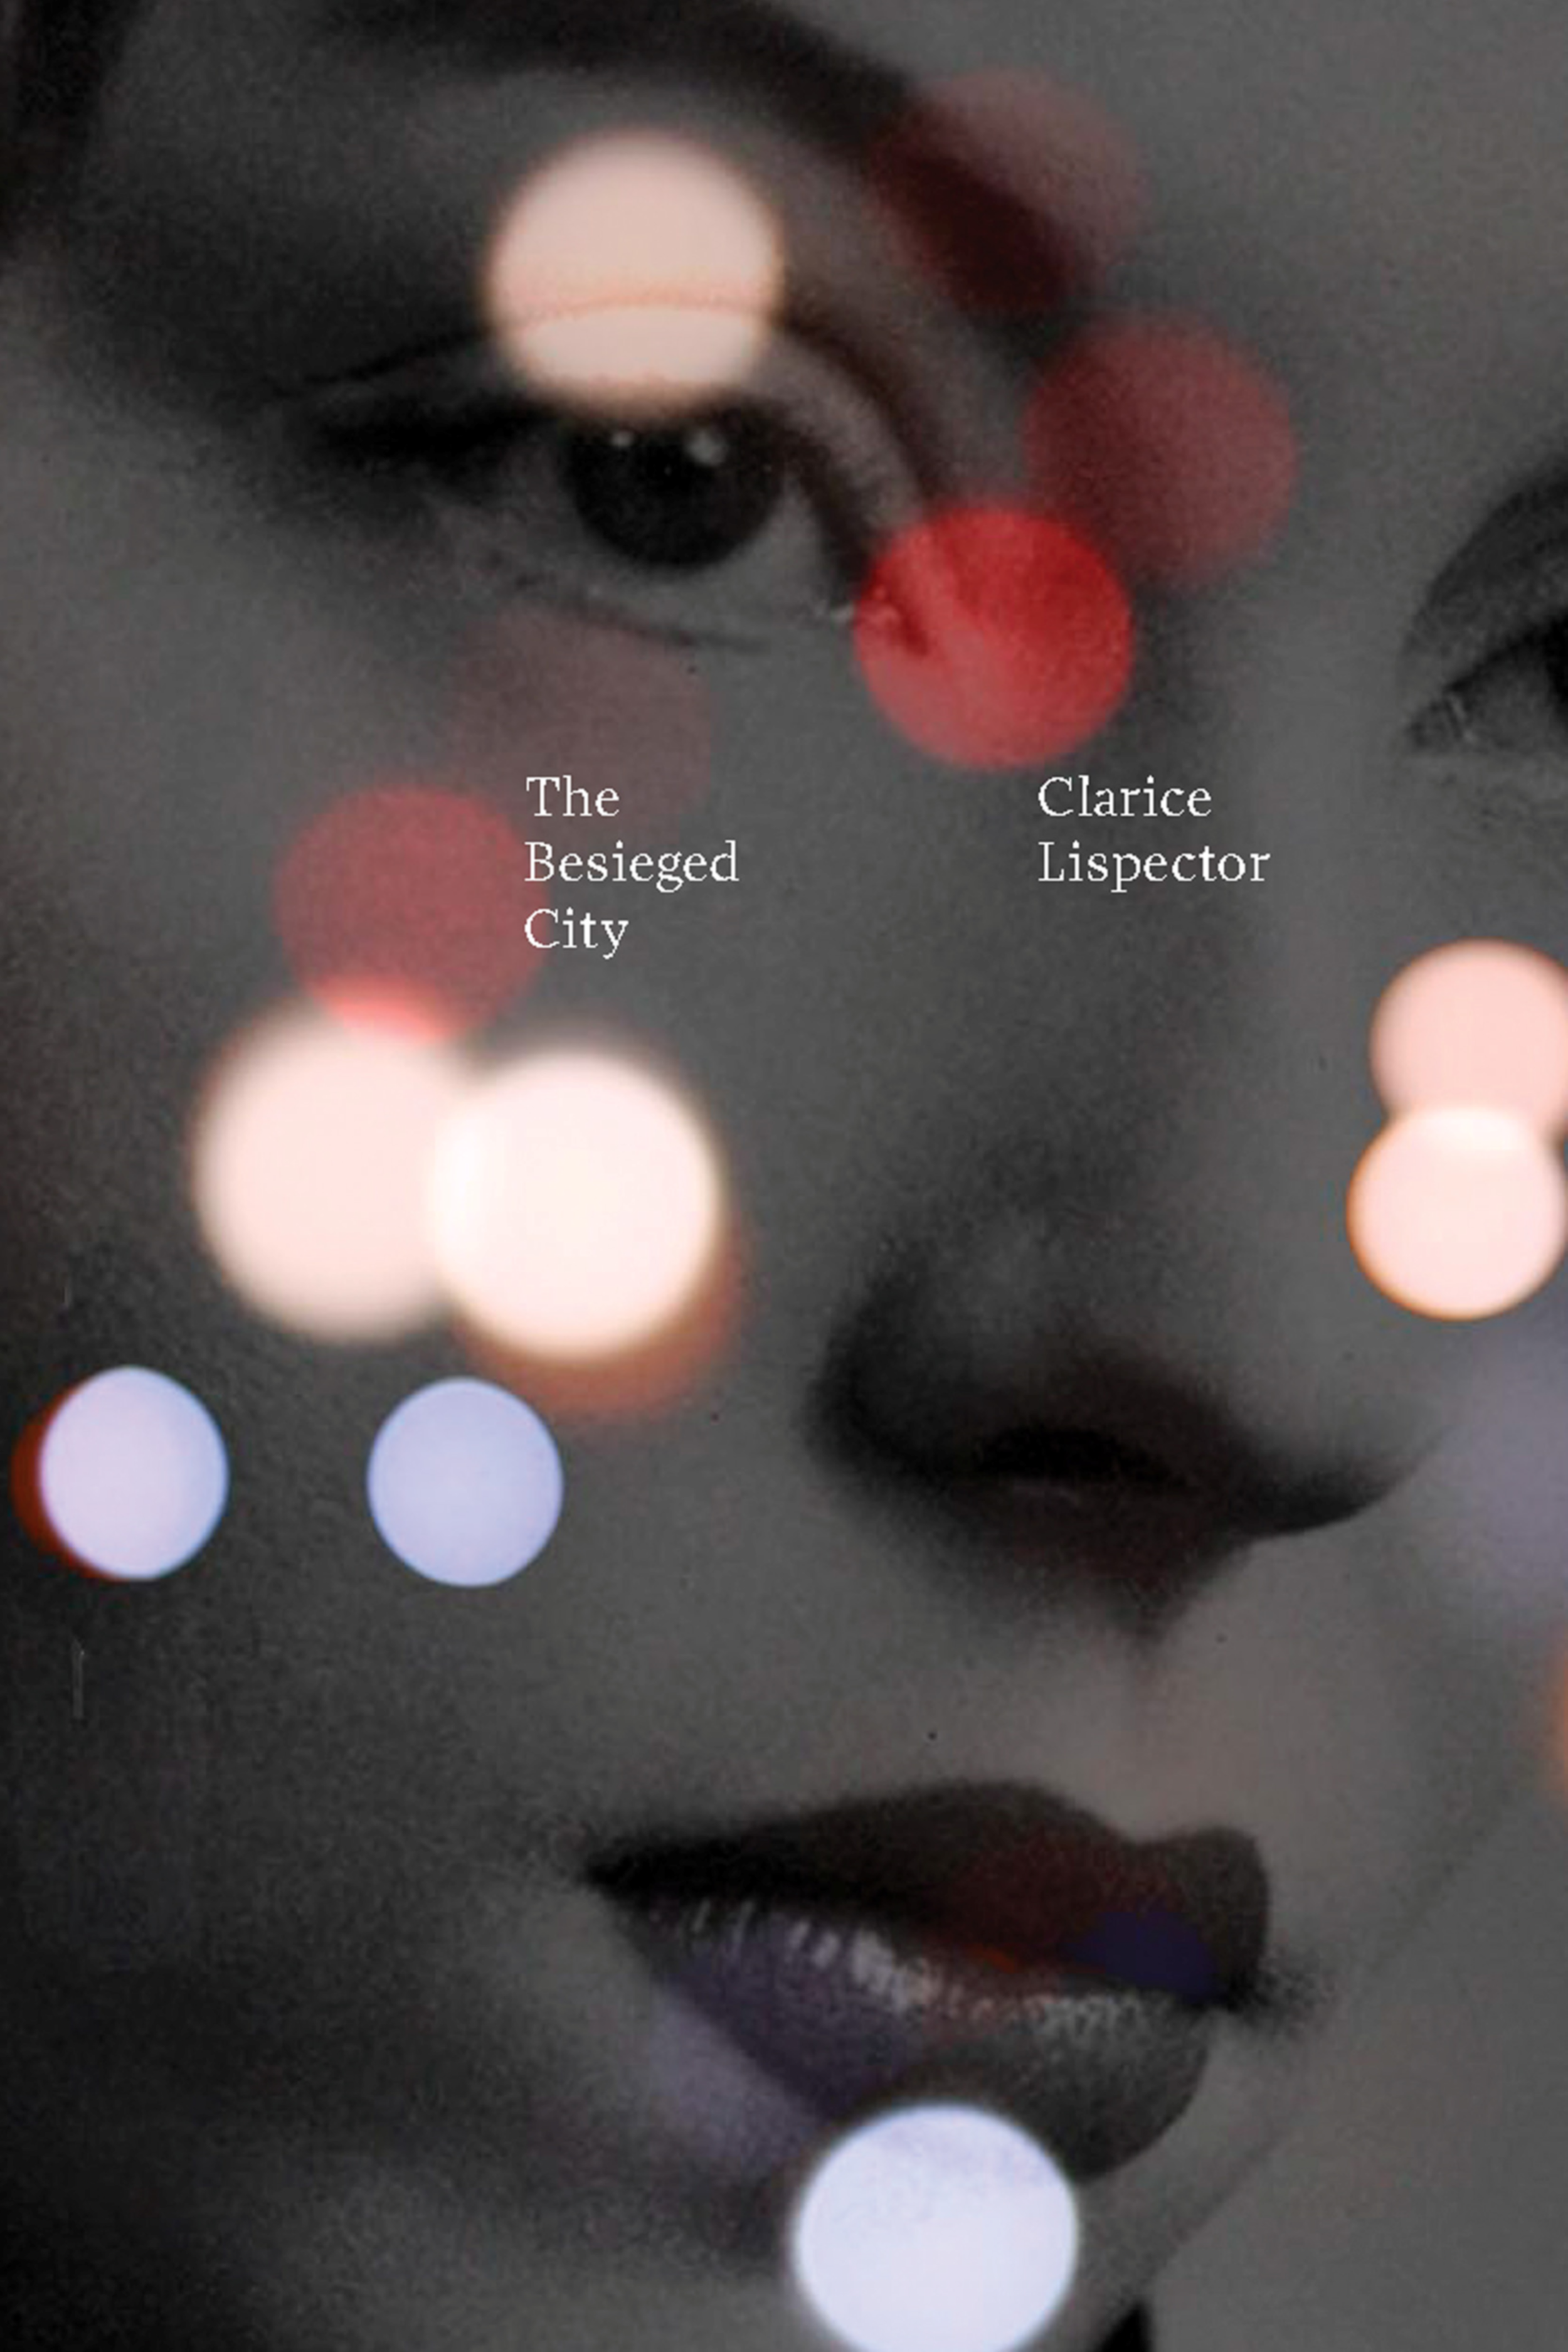 The Besieged City  by  Clarice Lispector  tr.  Jonny Lorenz  (New Directions, Apr. 2019)  Reviewed by  Daniel Fraser